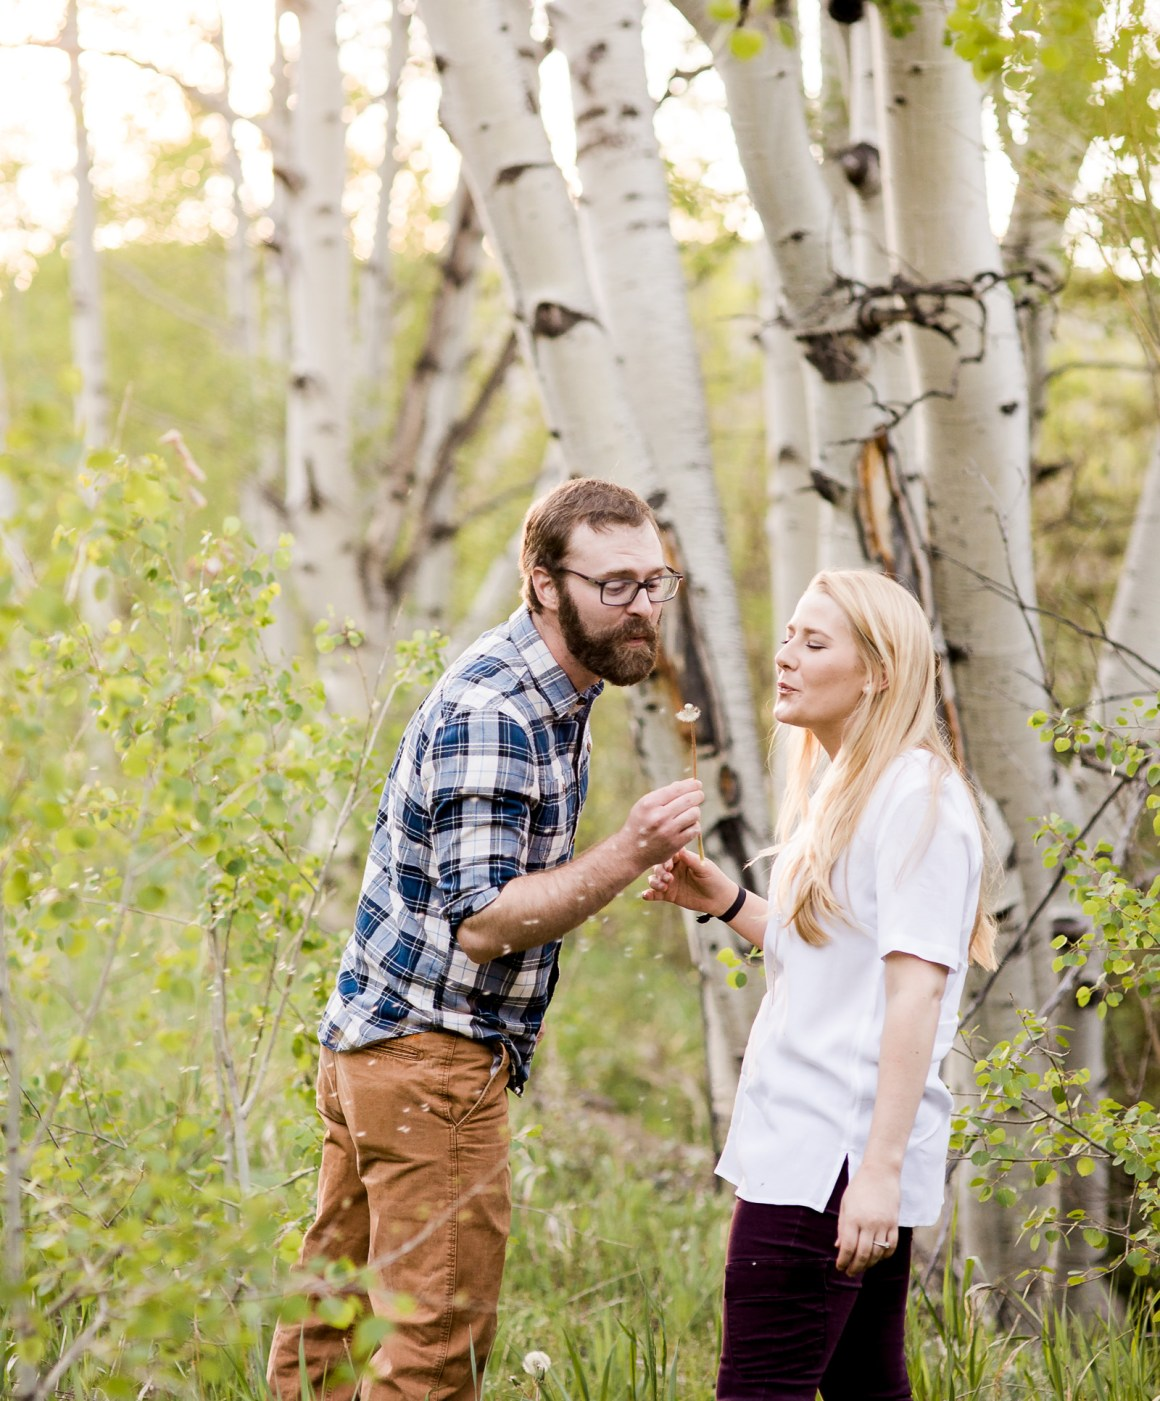 Engagement photography in the mountains of Wyoming by Laramie based photographer. Couple blowing dandelion